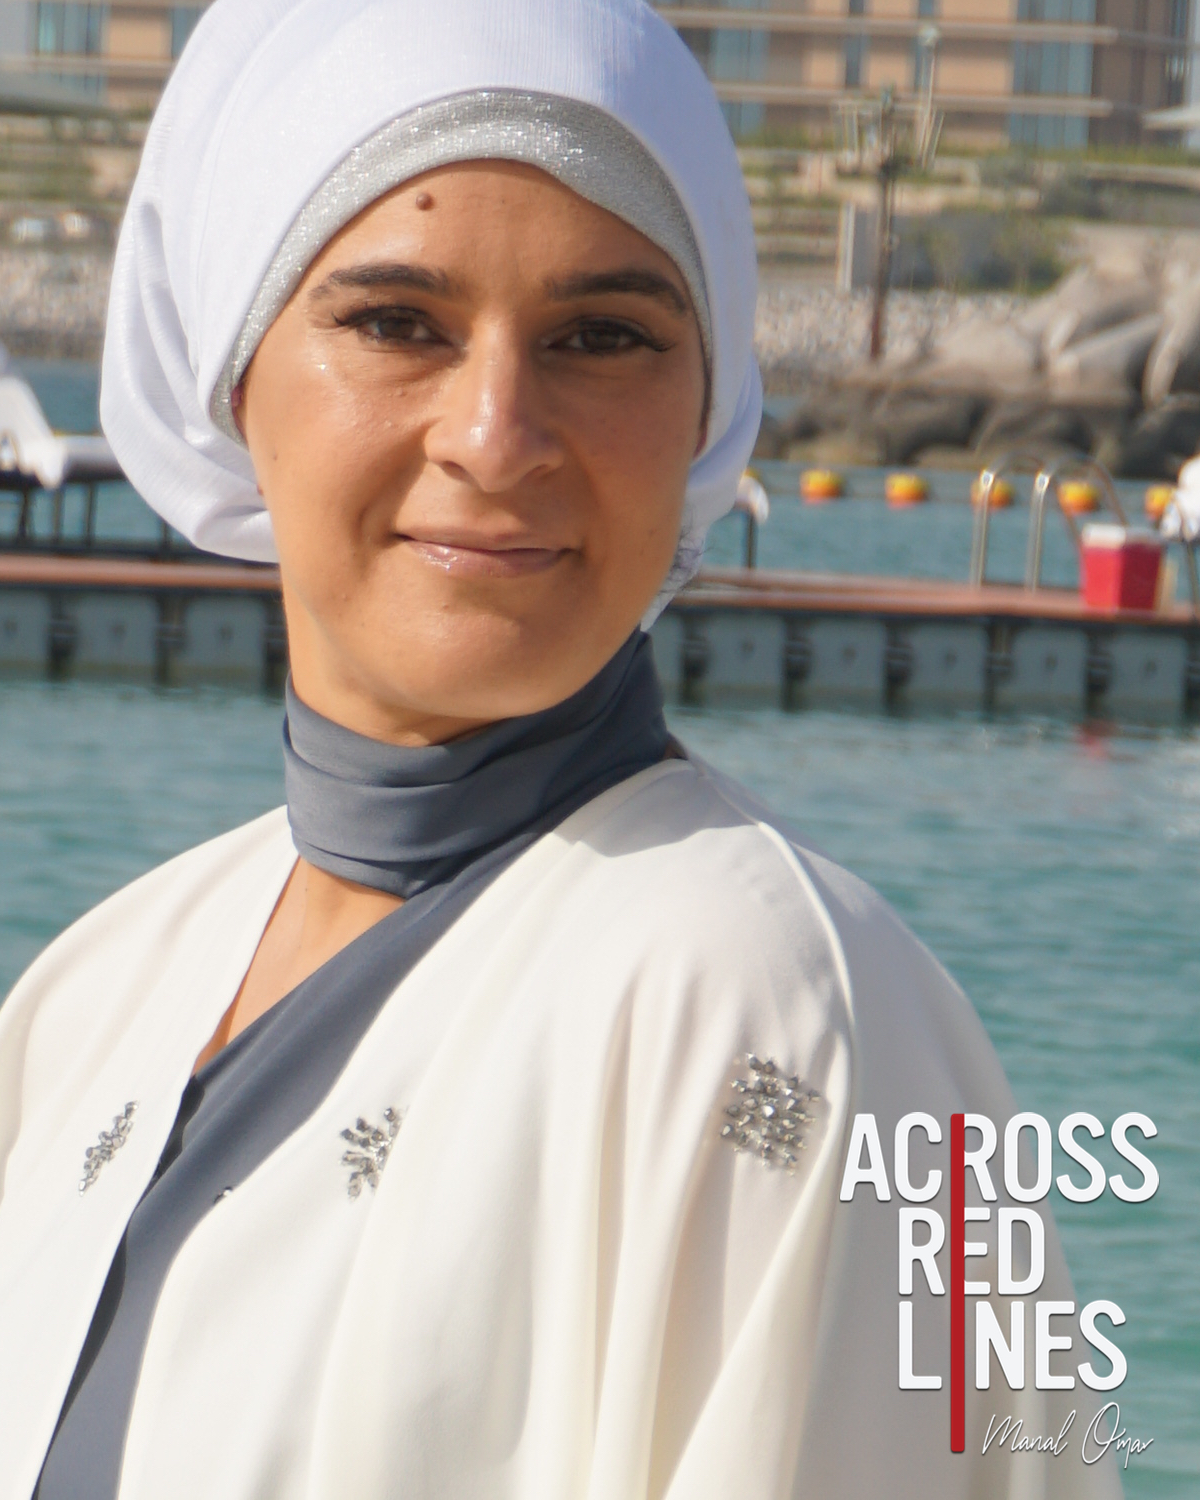 Manal Omar, Founder and CEO, Across Red Lines